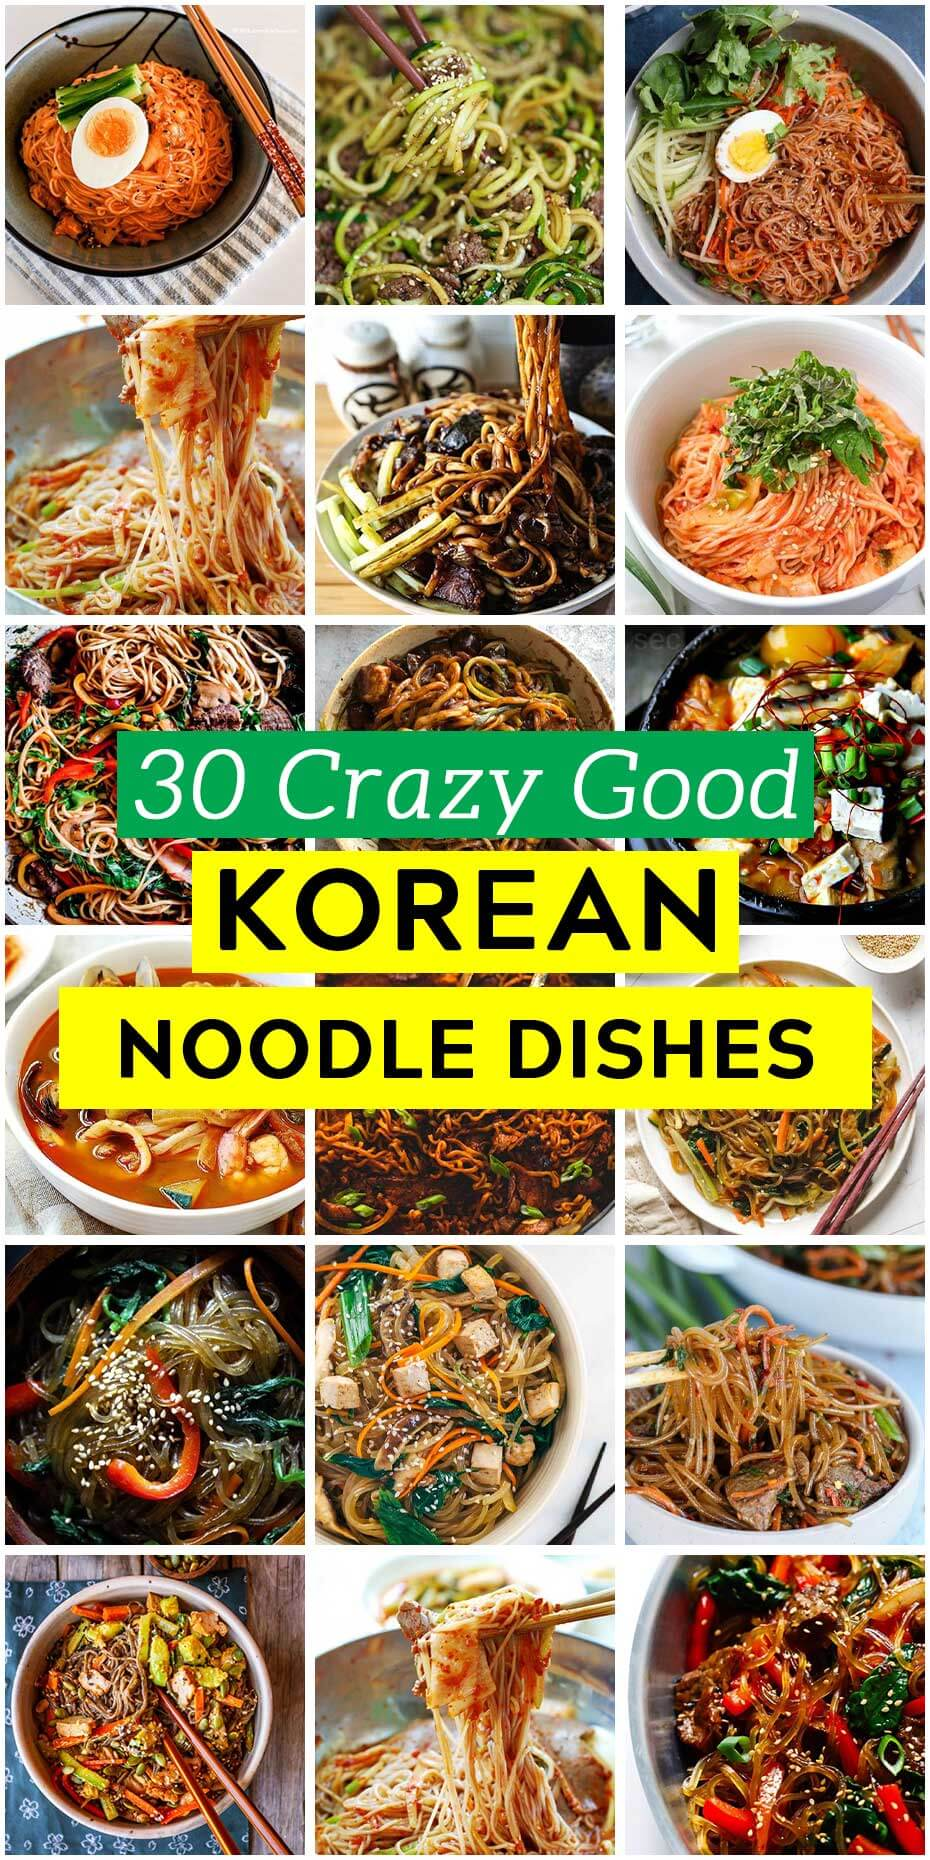 Top 30 Korean Noodle Dishes That You Should Try Once